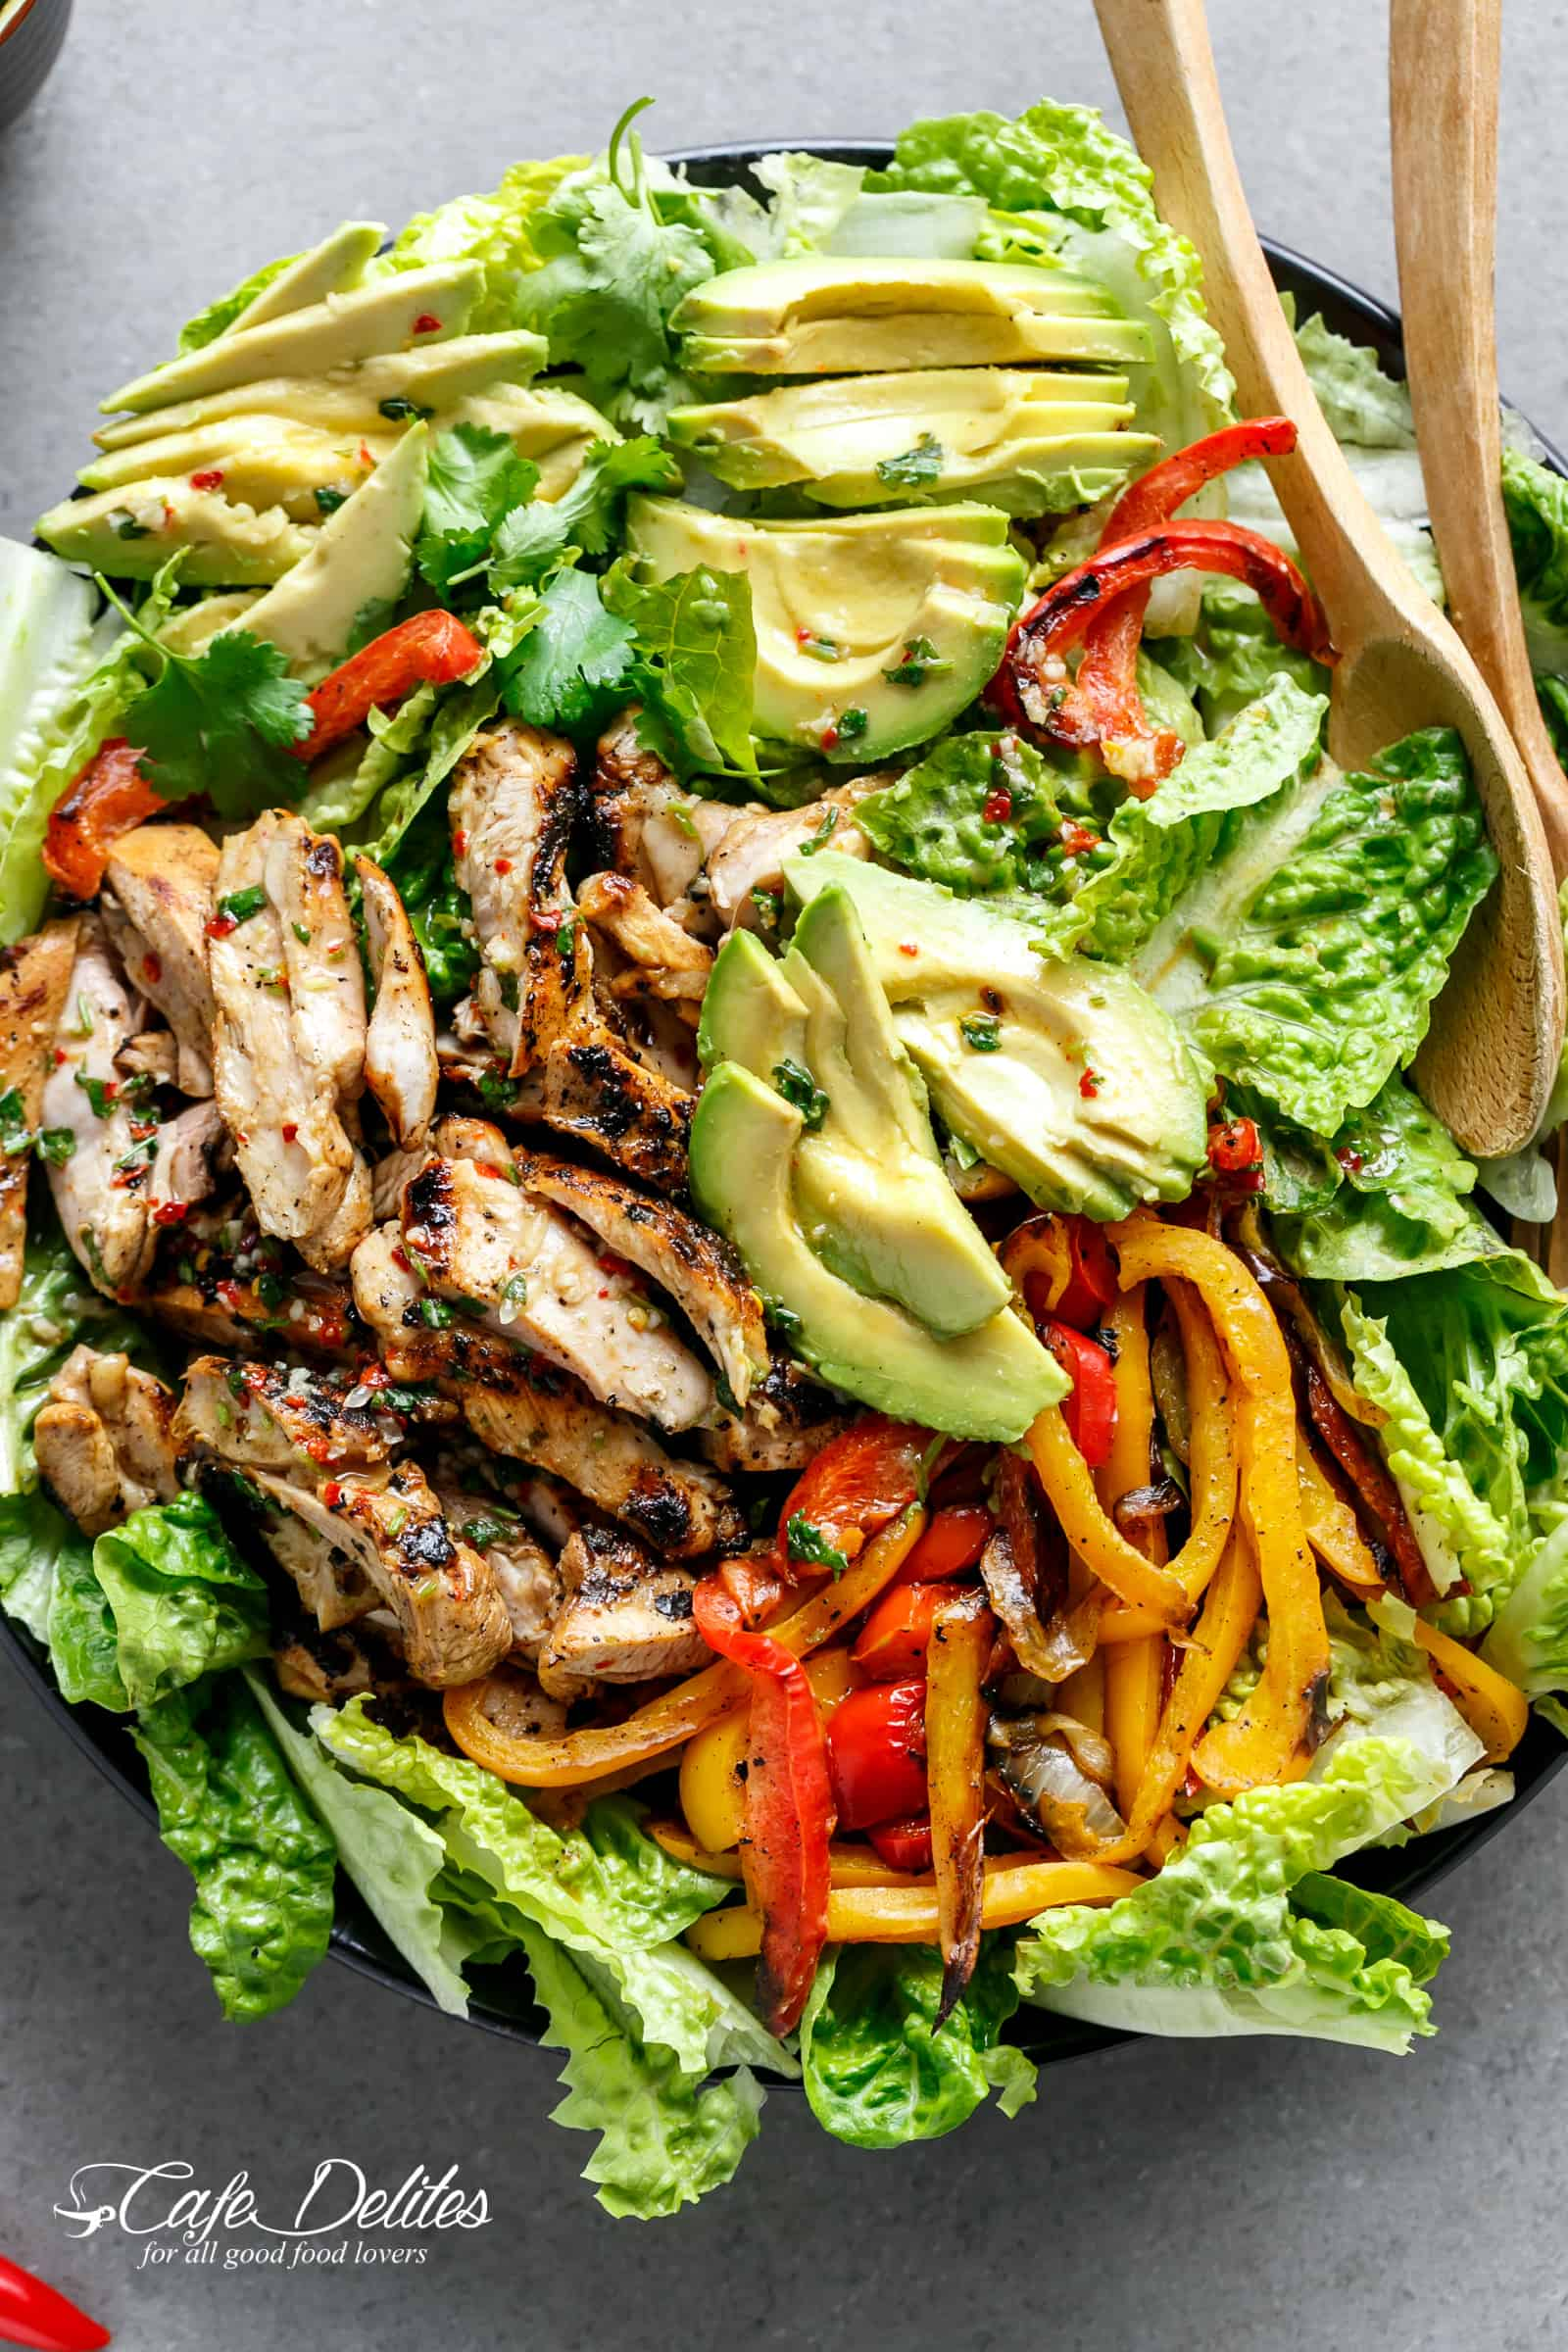 Grilled Chili Lime Chicken Fajita Salad (+ Video) - Cafe Delites